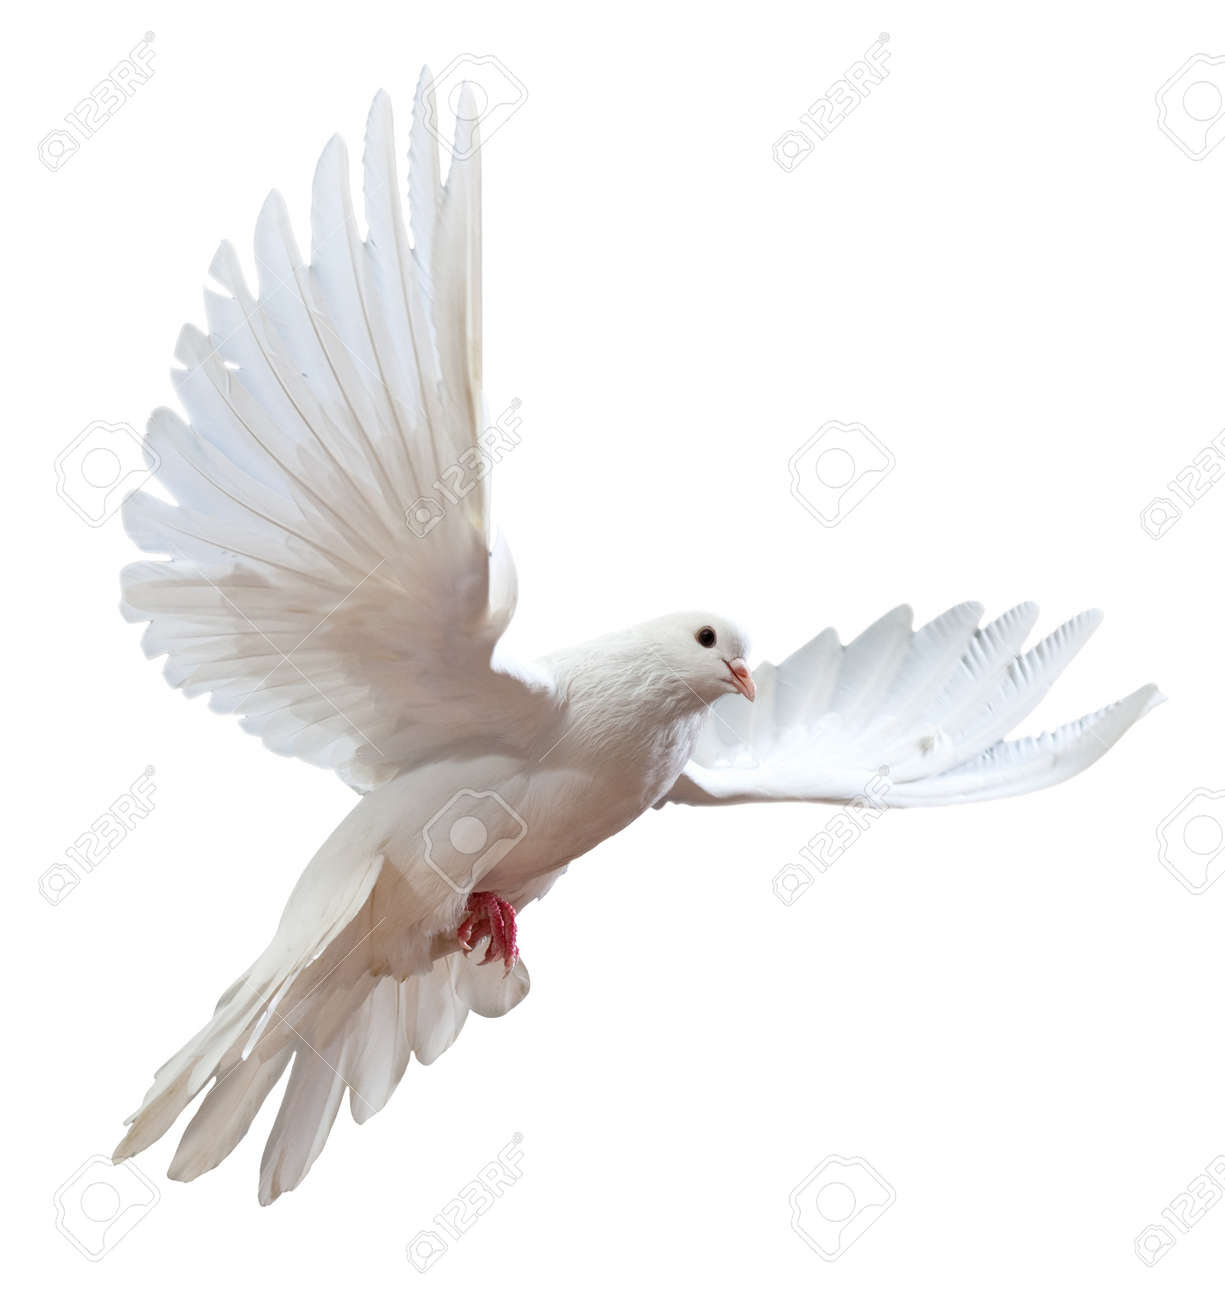 http://previews.123rf.com/images/irochka/irochka1103/irochka110300199/9039421-A-free-flying-white-dove-isolated-on-a-white-background-Stock-Photo.jpg